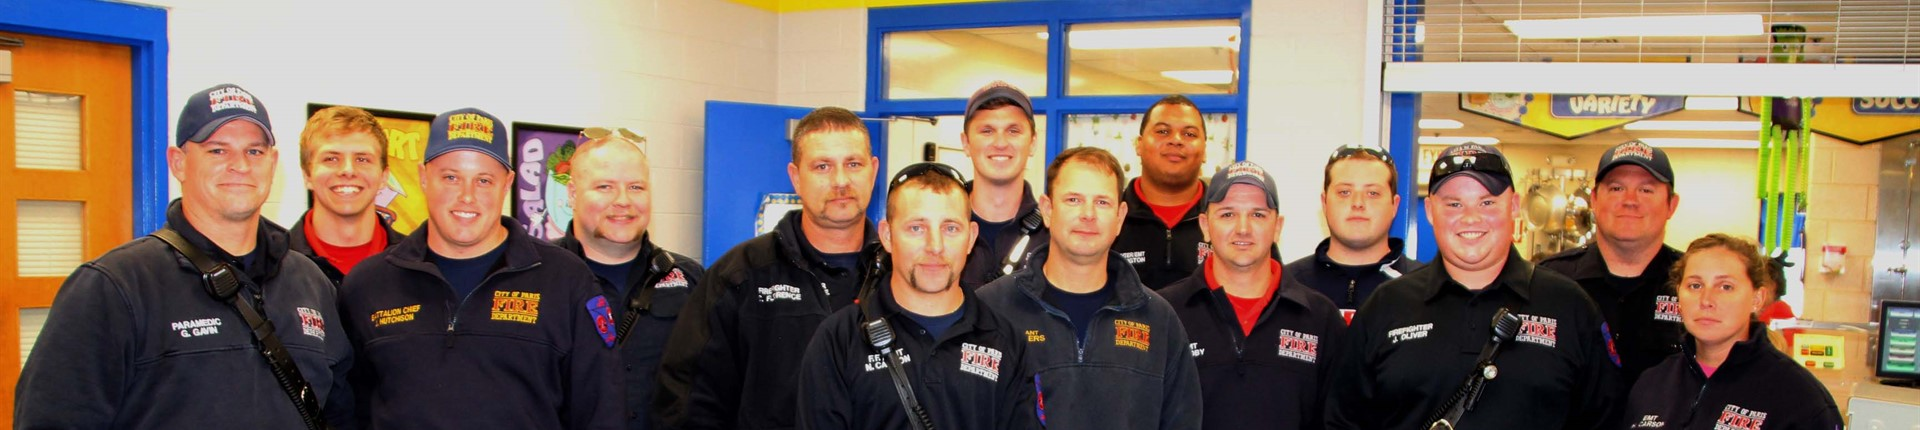 EMT's and Firefighters visit Cane Ridge Elementary